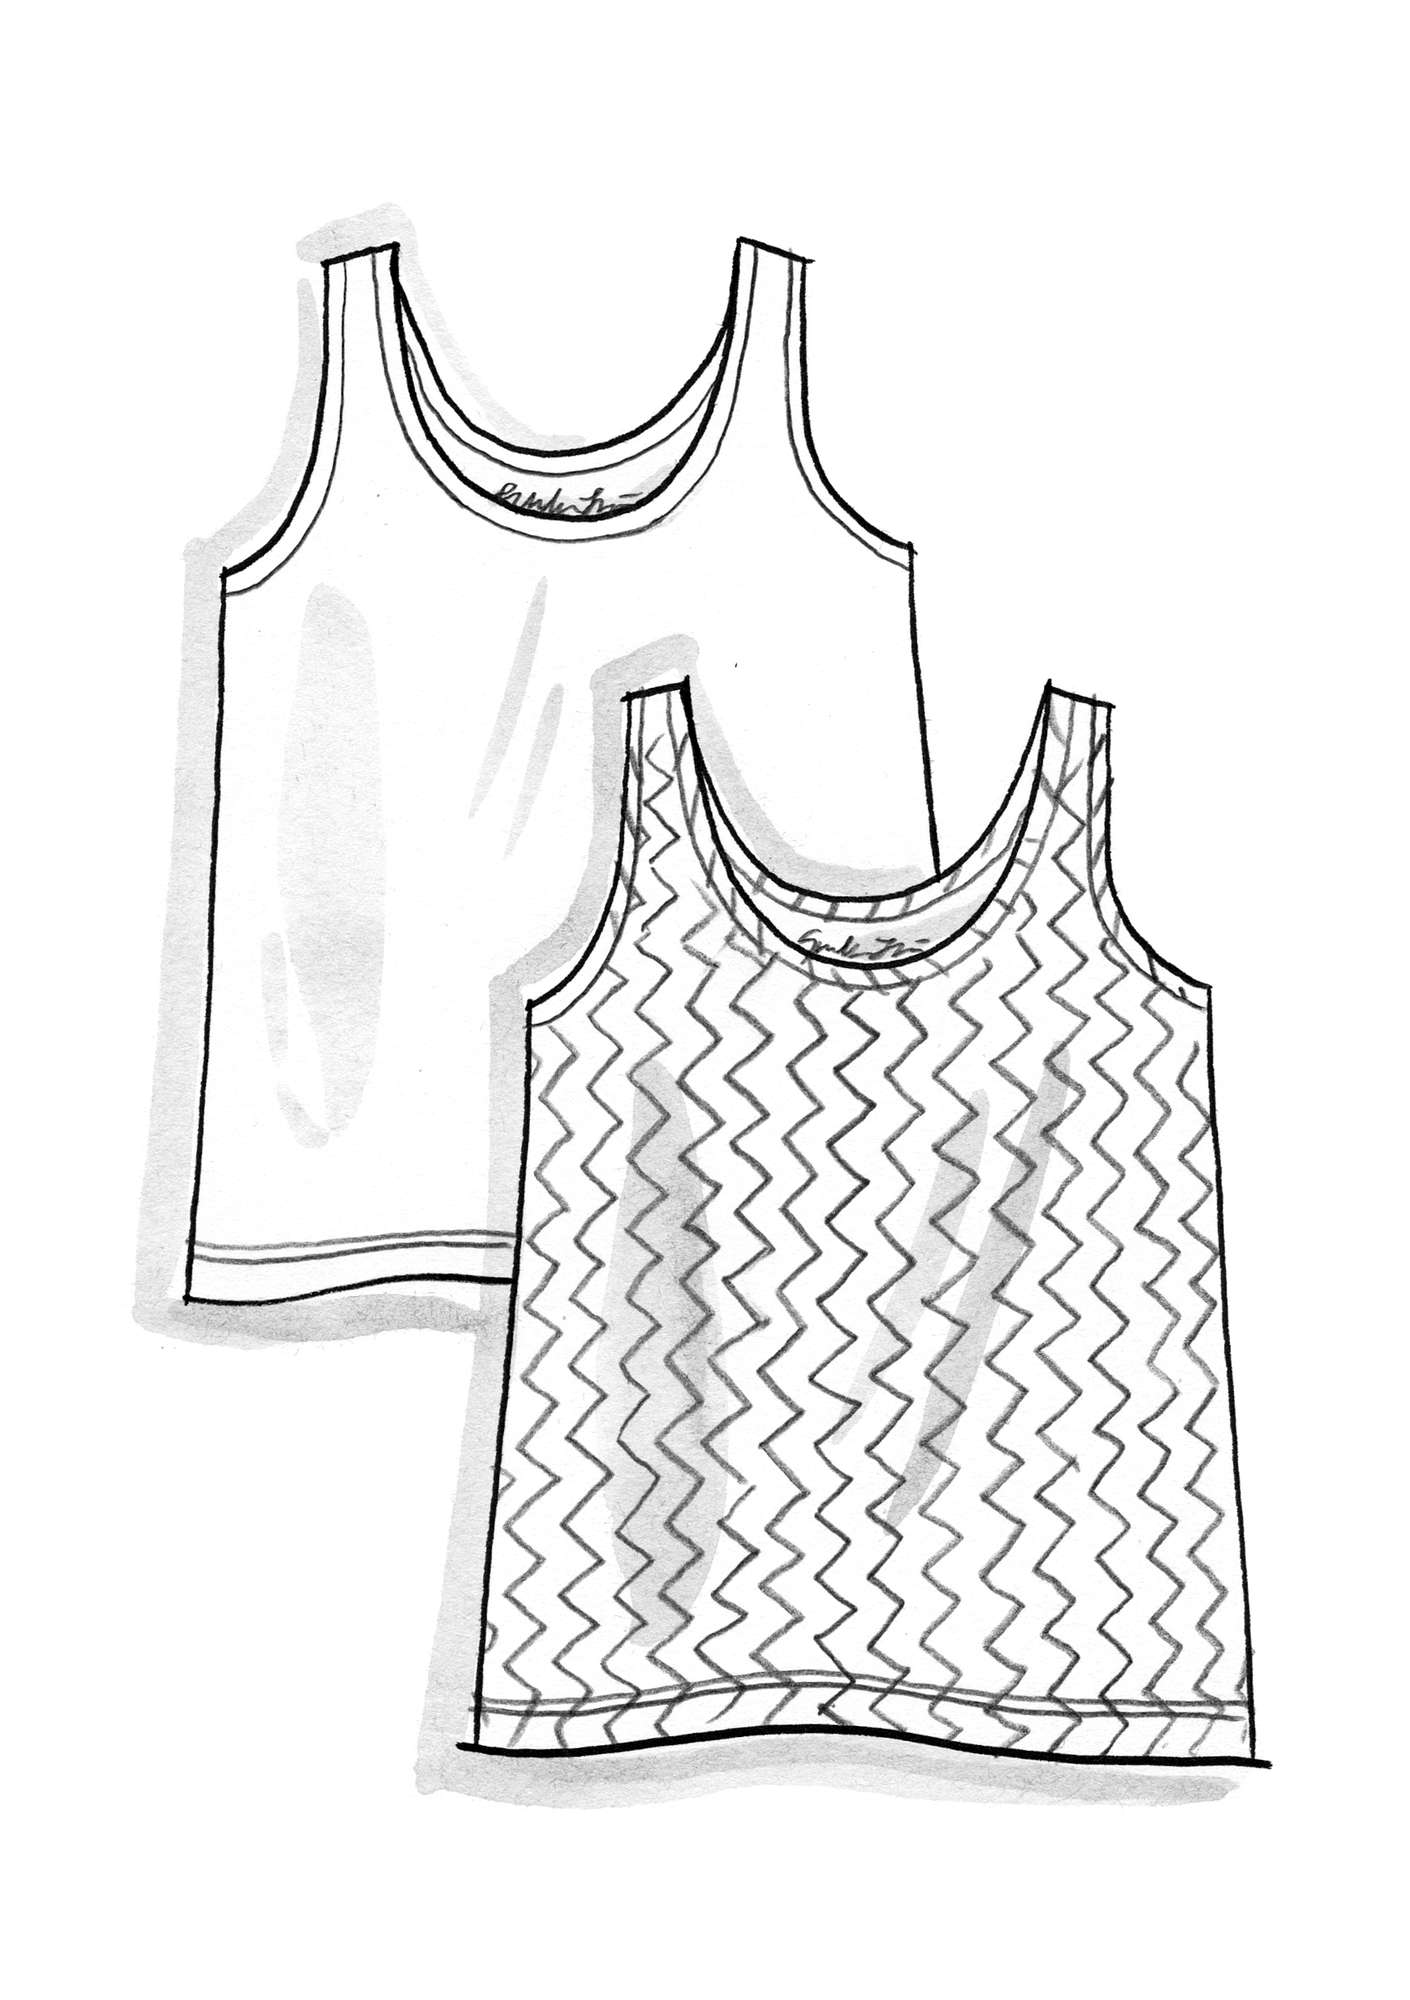 VIGG tank top in modal/eco-cotton/spandex unbleached